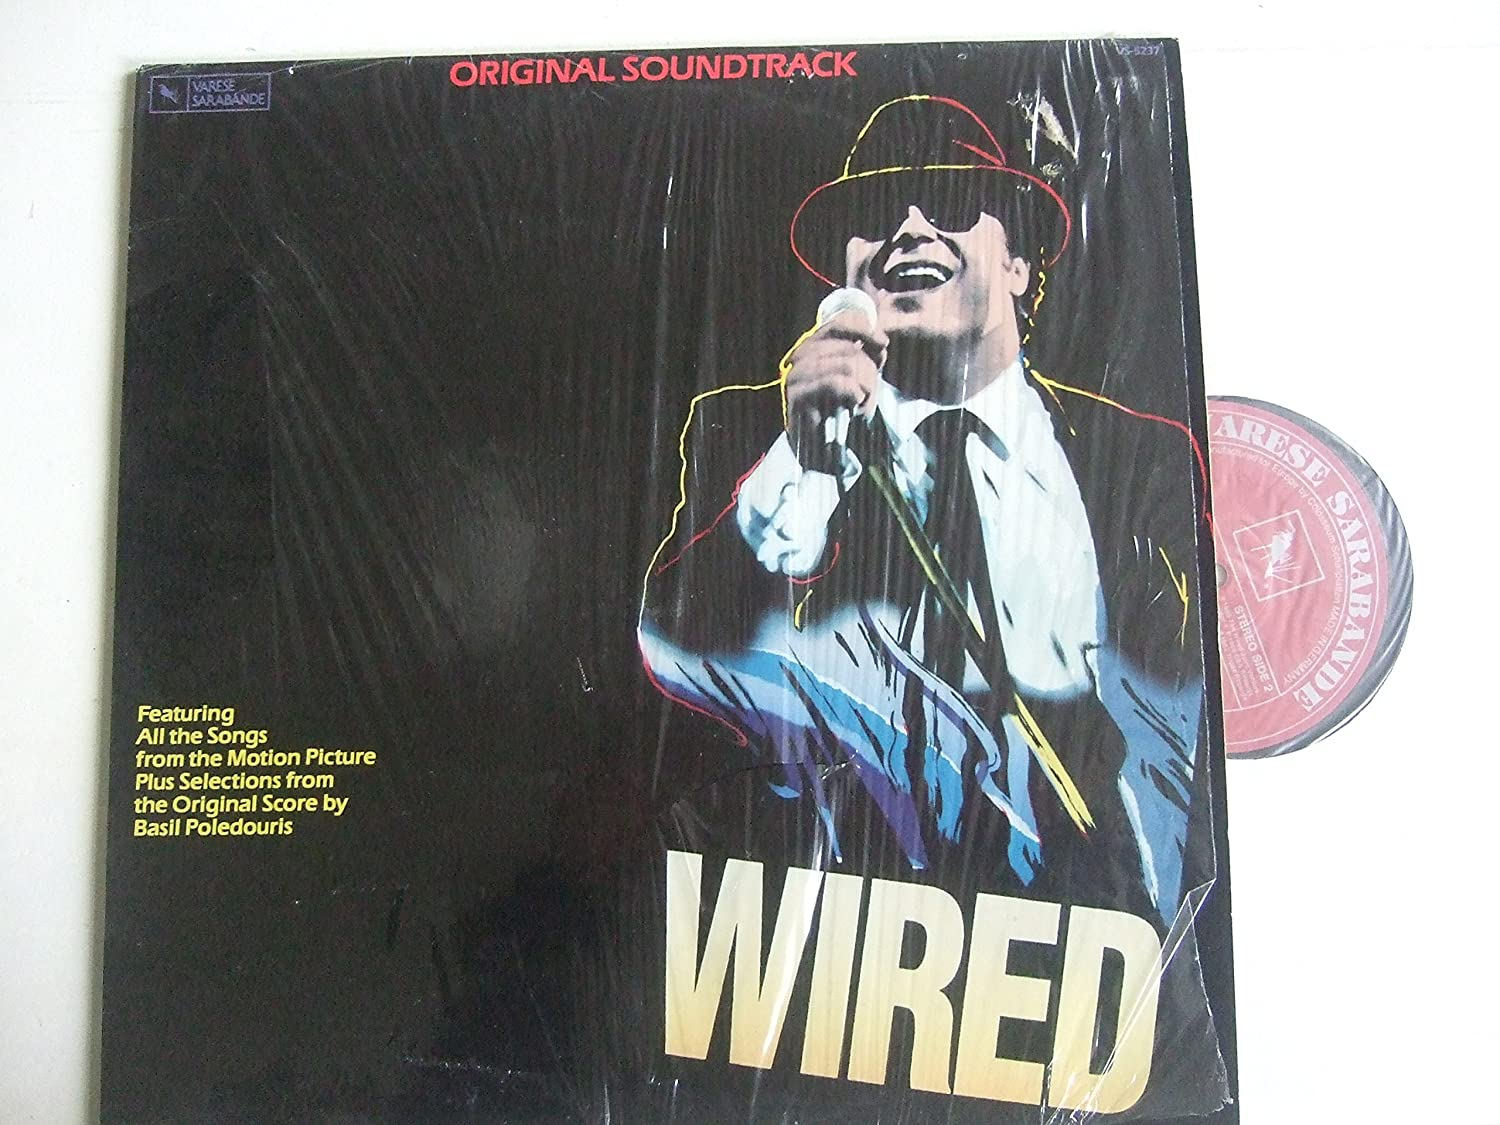 VARIOUS ARTISTS - Wired - Amazon.com Music